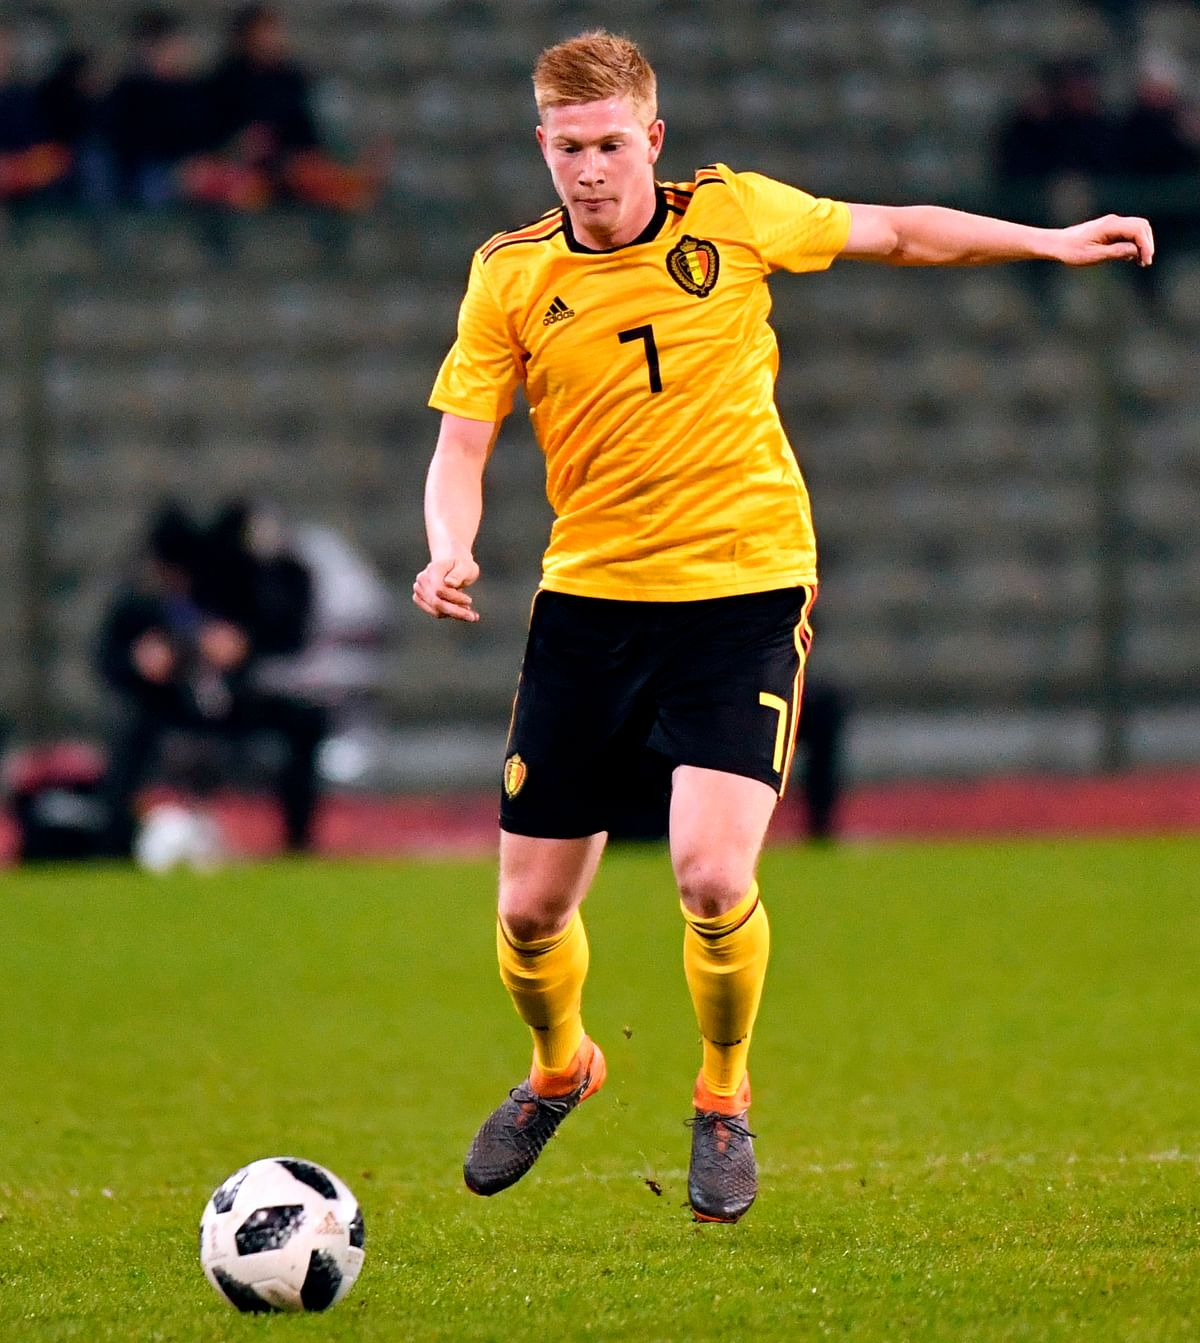 FILE - In this Tuesday, March 27, 2018 filer, Belgium's Kevin De Bruyne in action during an international friendly soccer match between Belgium and Saudi Arabia at King Baudouin stadium in Brussels.